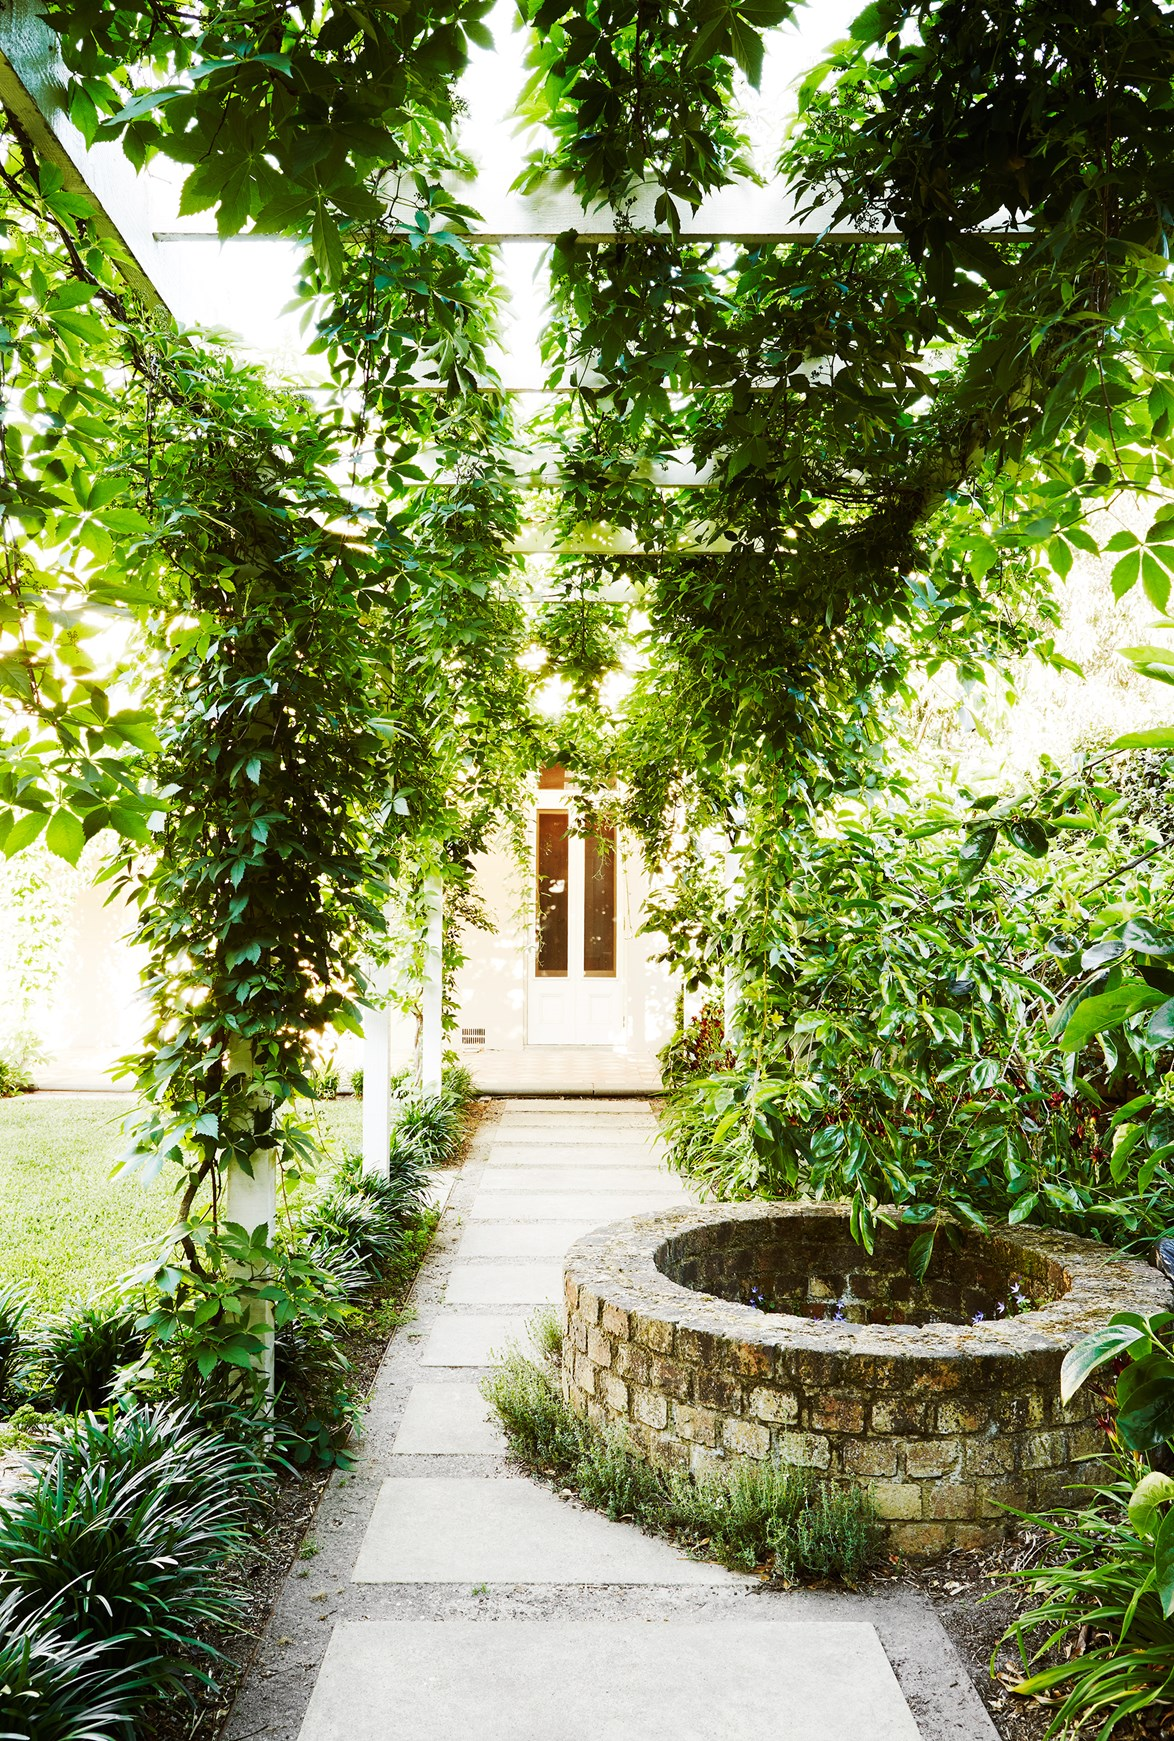 "For owners Marg and Rob, this [restored 19th Century garden](https://www.homestolove.com.au/19th-century-garden-restored-to-heritage-state-4210|target=""_blank"") has been a 30-year pursuit. The magnificent garden features an ever-changing display of fragrant roses, azaleas, lavender and camellias along with citrus trees, potted herbs and strawberries."